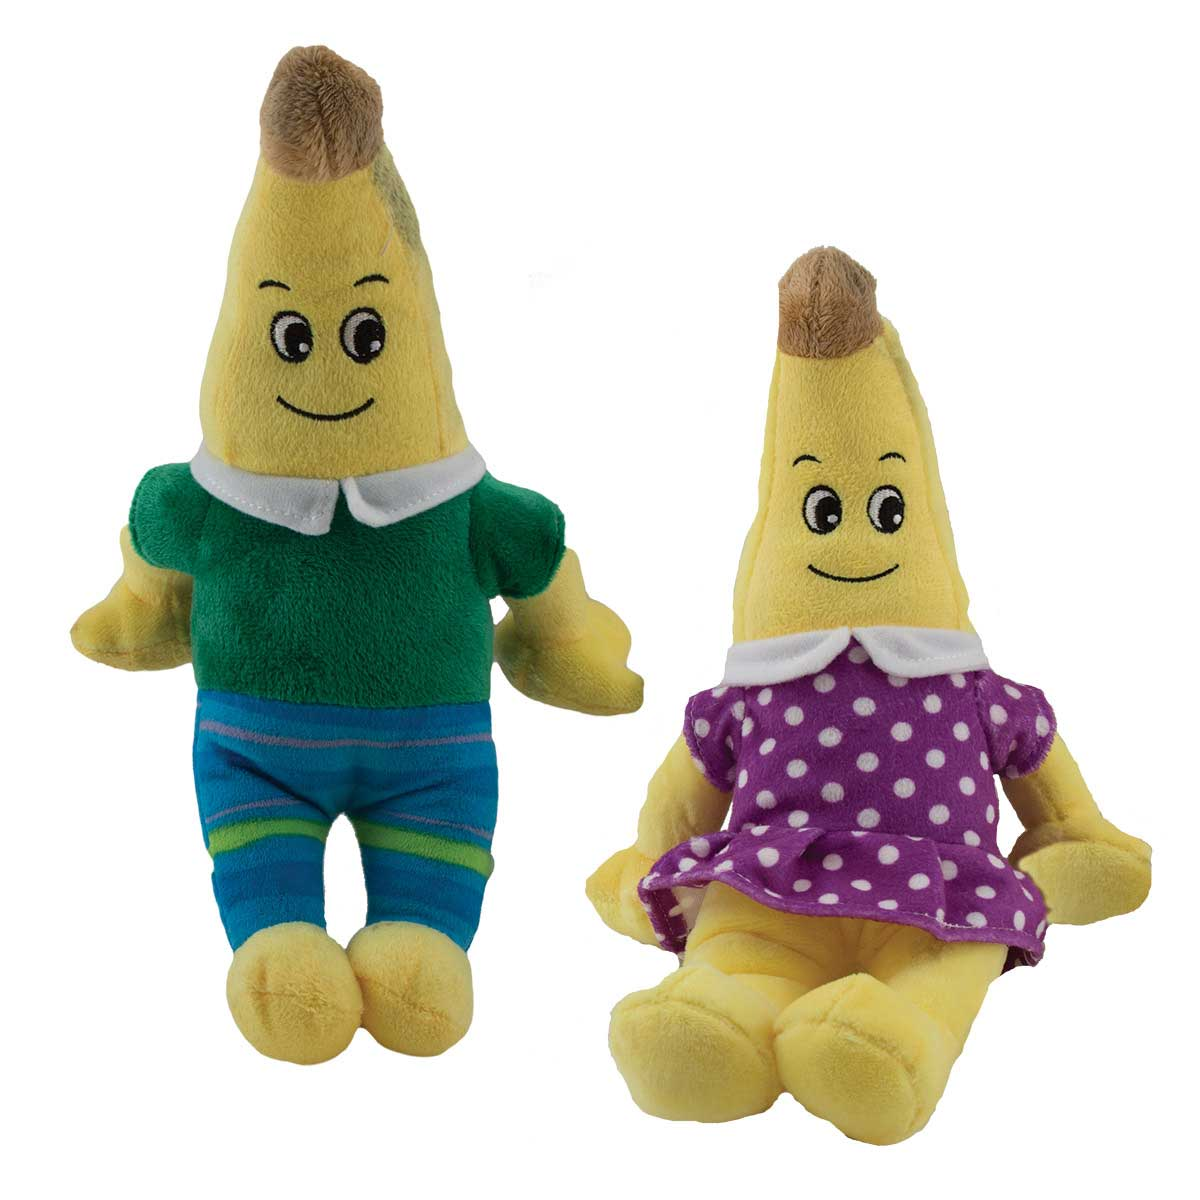 Dawgeee Toy Plush Banana Couple Dog Toys - 13 inches